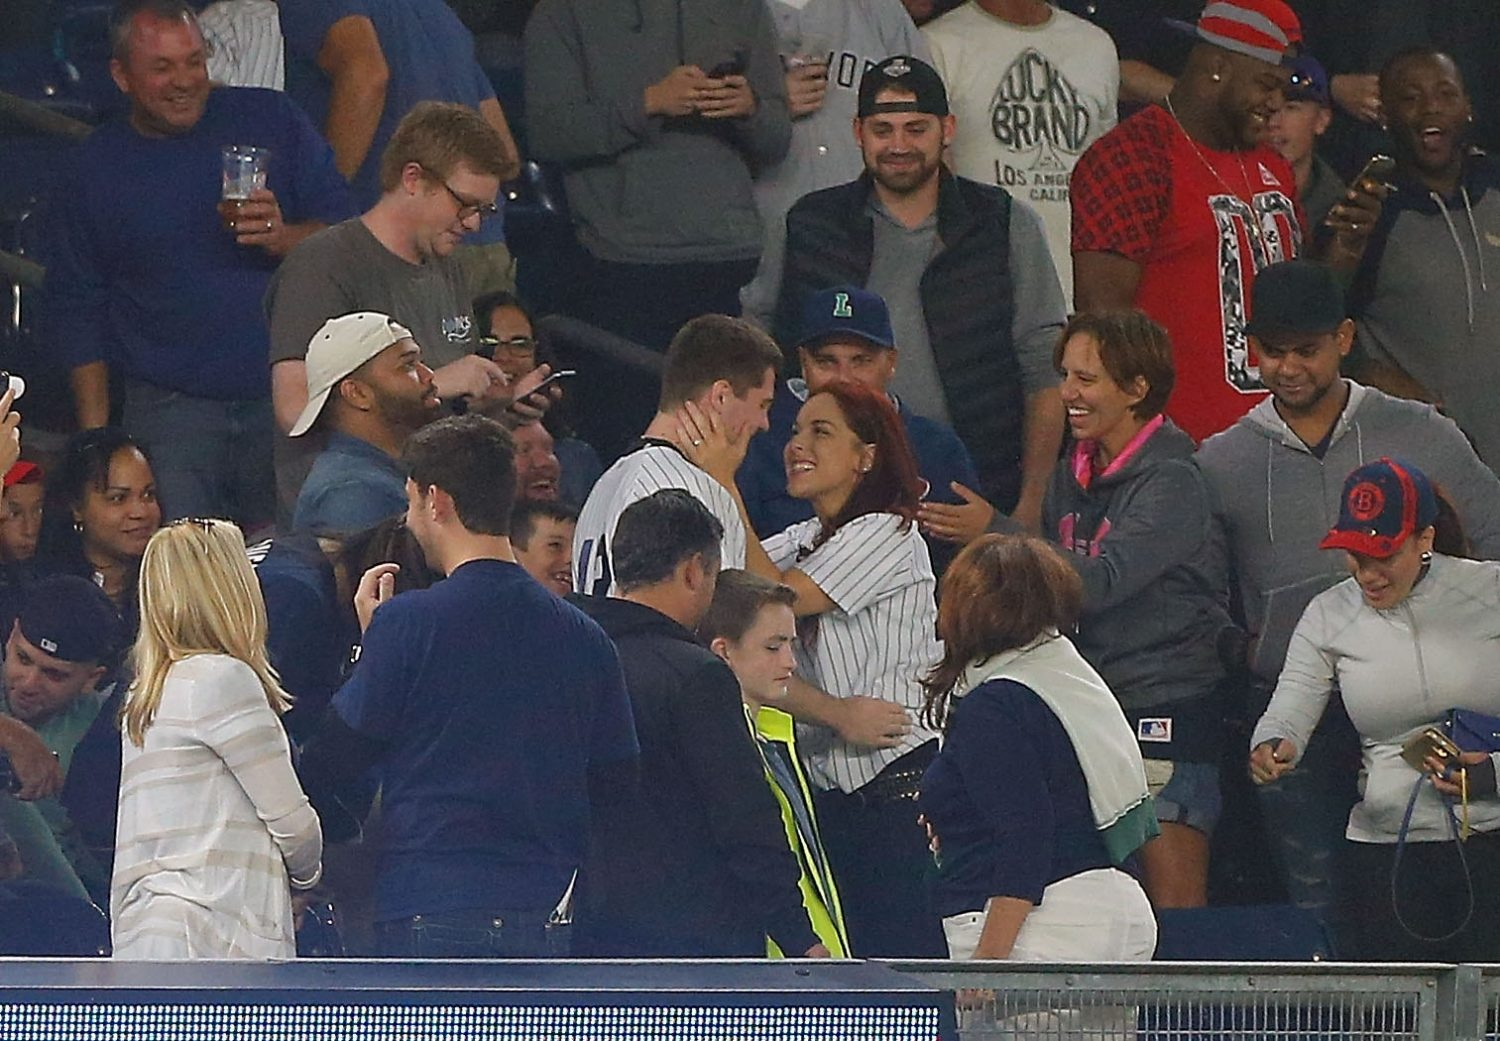 Heather Terwilliger of Fredonia got engaged to Andrew Fox Tuesday night in the upper deck during a game between the New York Yankees and the Boston Red Sox at Yankee Stadium. The proposal was delayed when Fox dropped the ring, then found it, all of which was witnessed by fans. (Photo by Jim McIsaac/Getty Images)